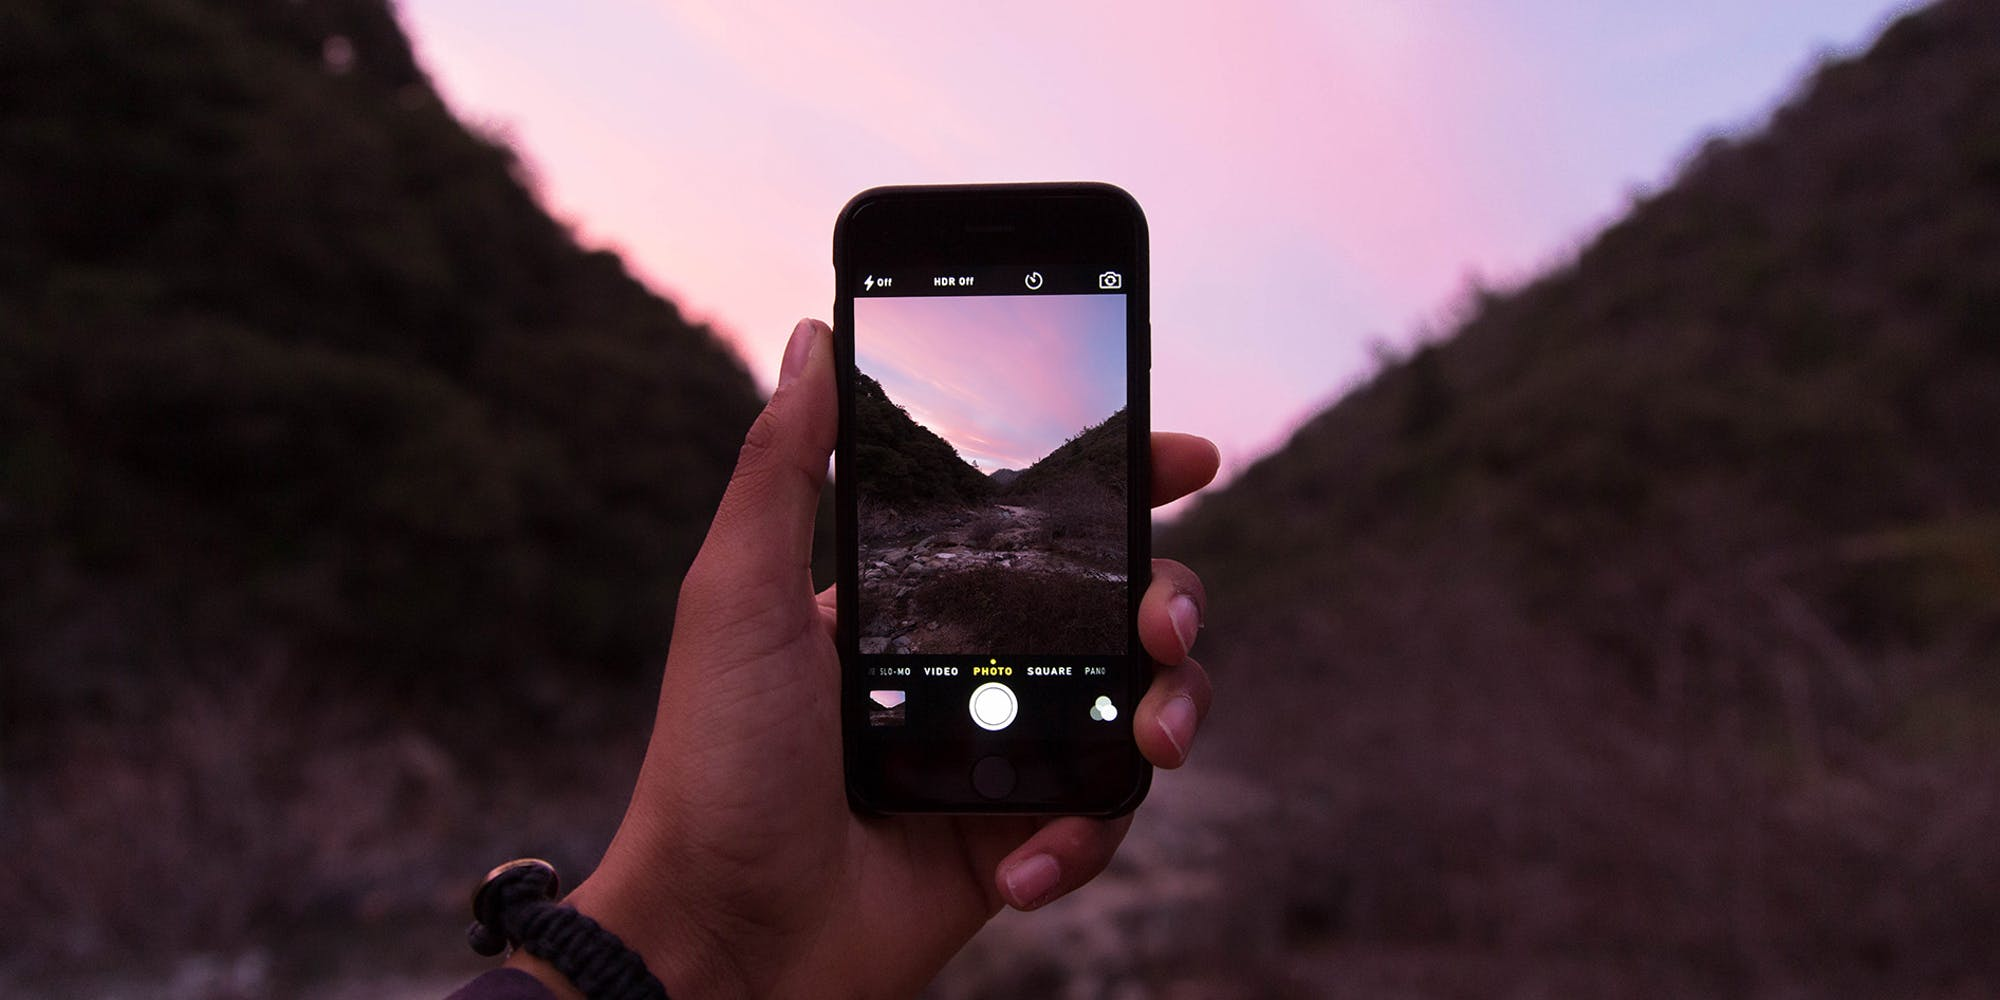 Man holding phone taking photo of a valley